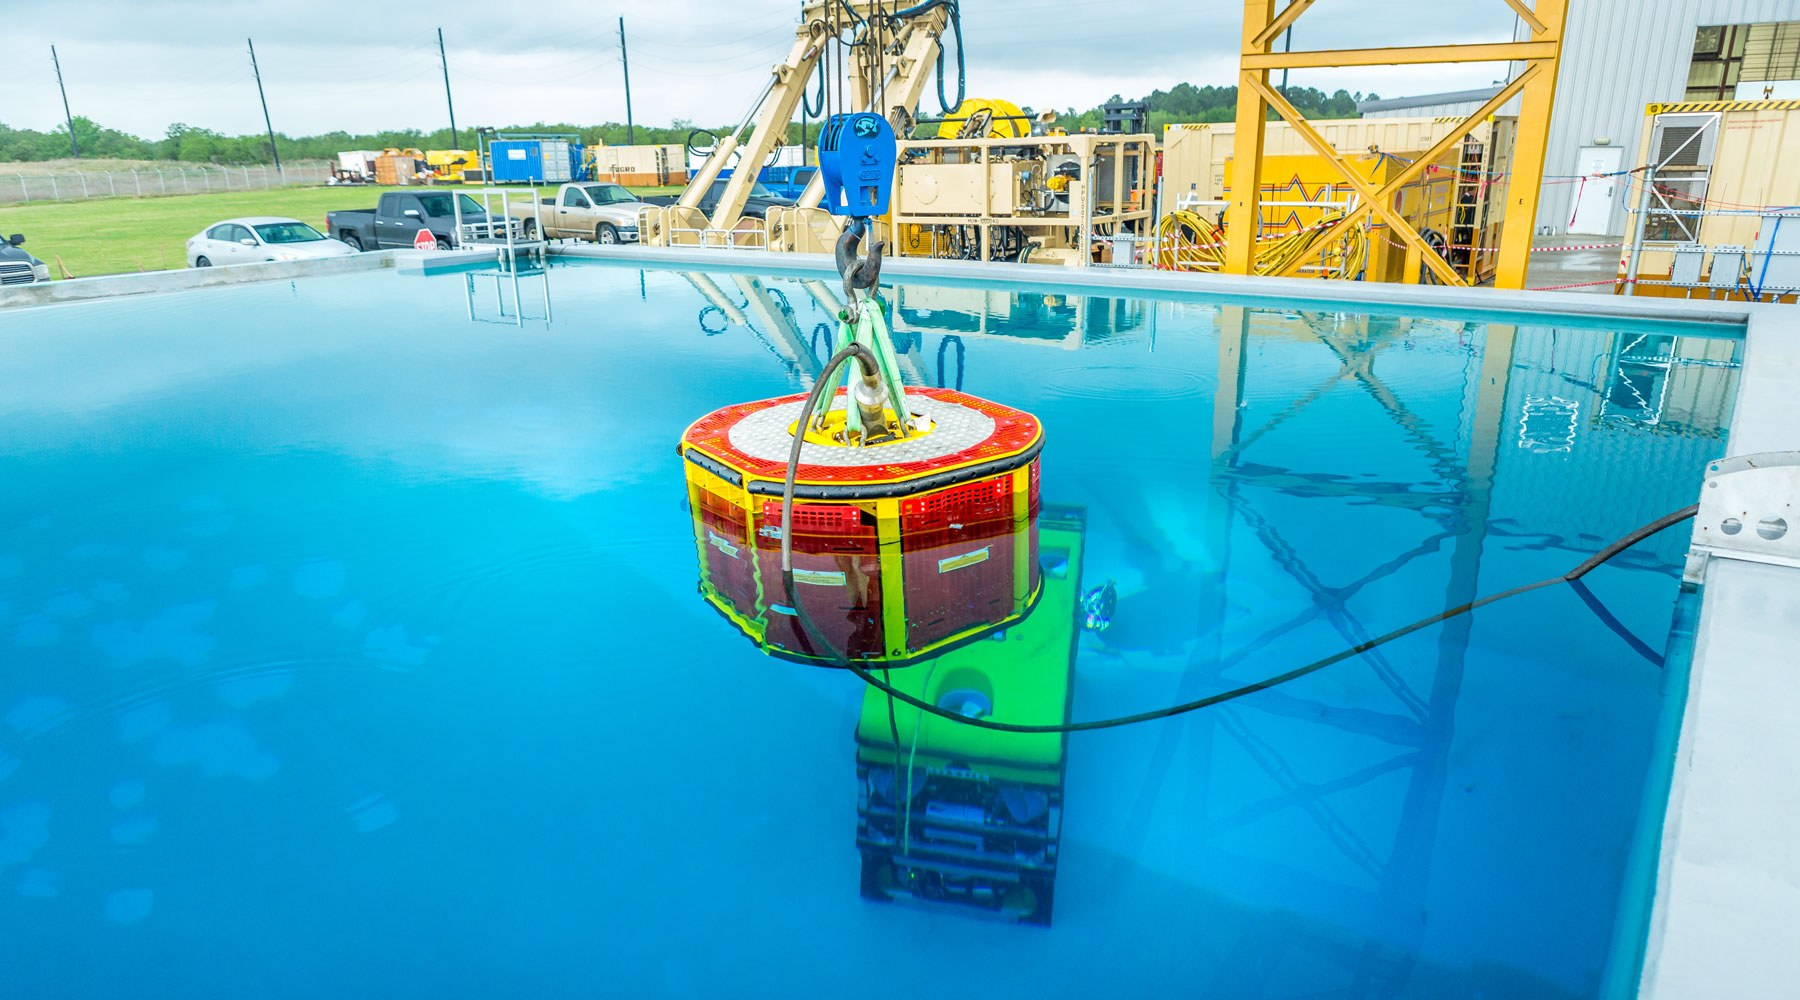 A piece of subsea equipment being tested in a tank of water